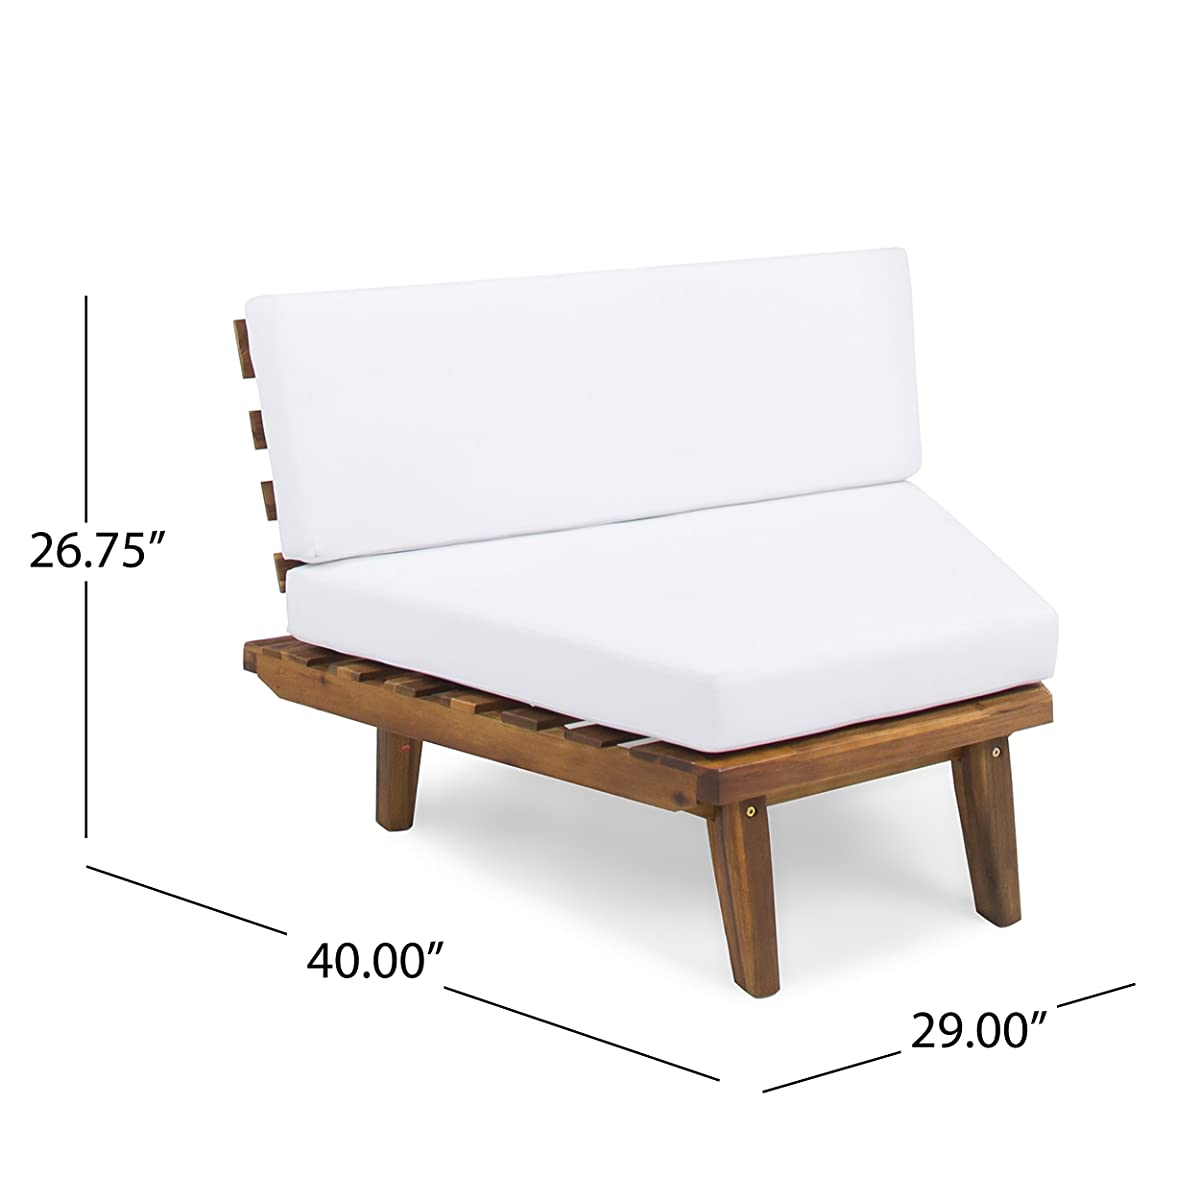 Highpoint Outdoor V Shaped 4 Piece Sandblast Finished Acacia Wood Sectional Sofa Set with White Water Resistant Cushions